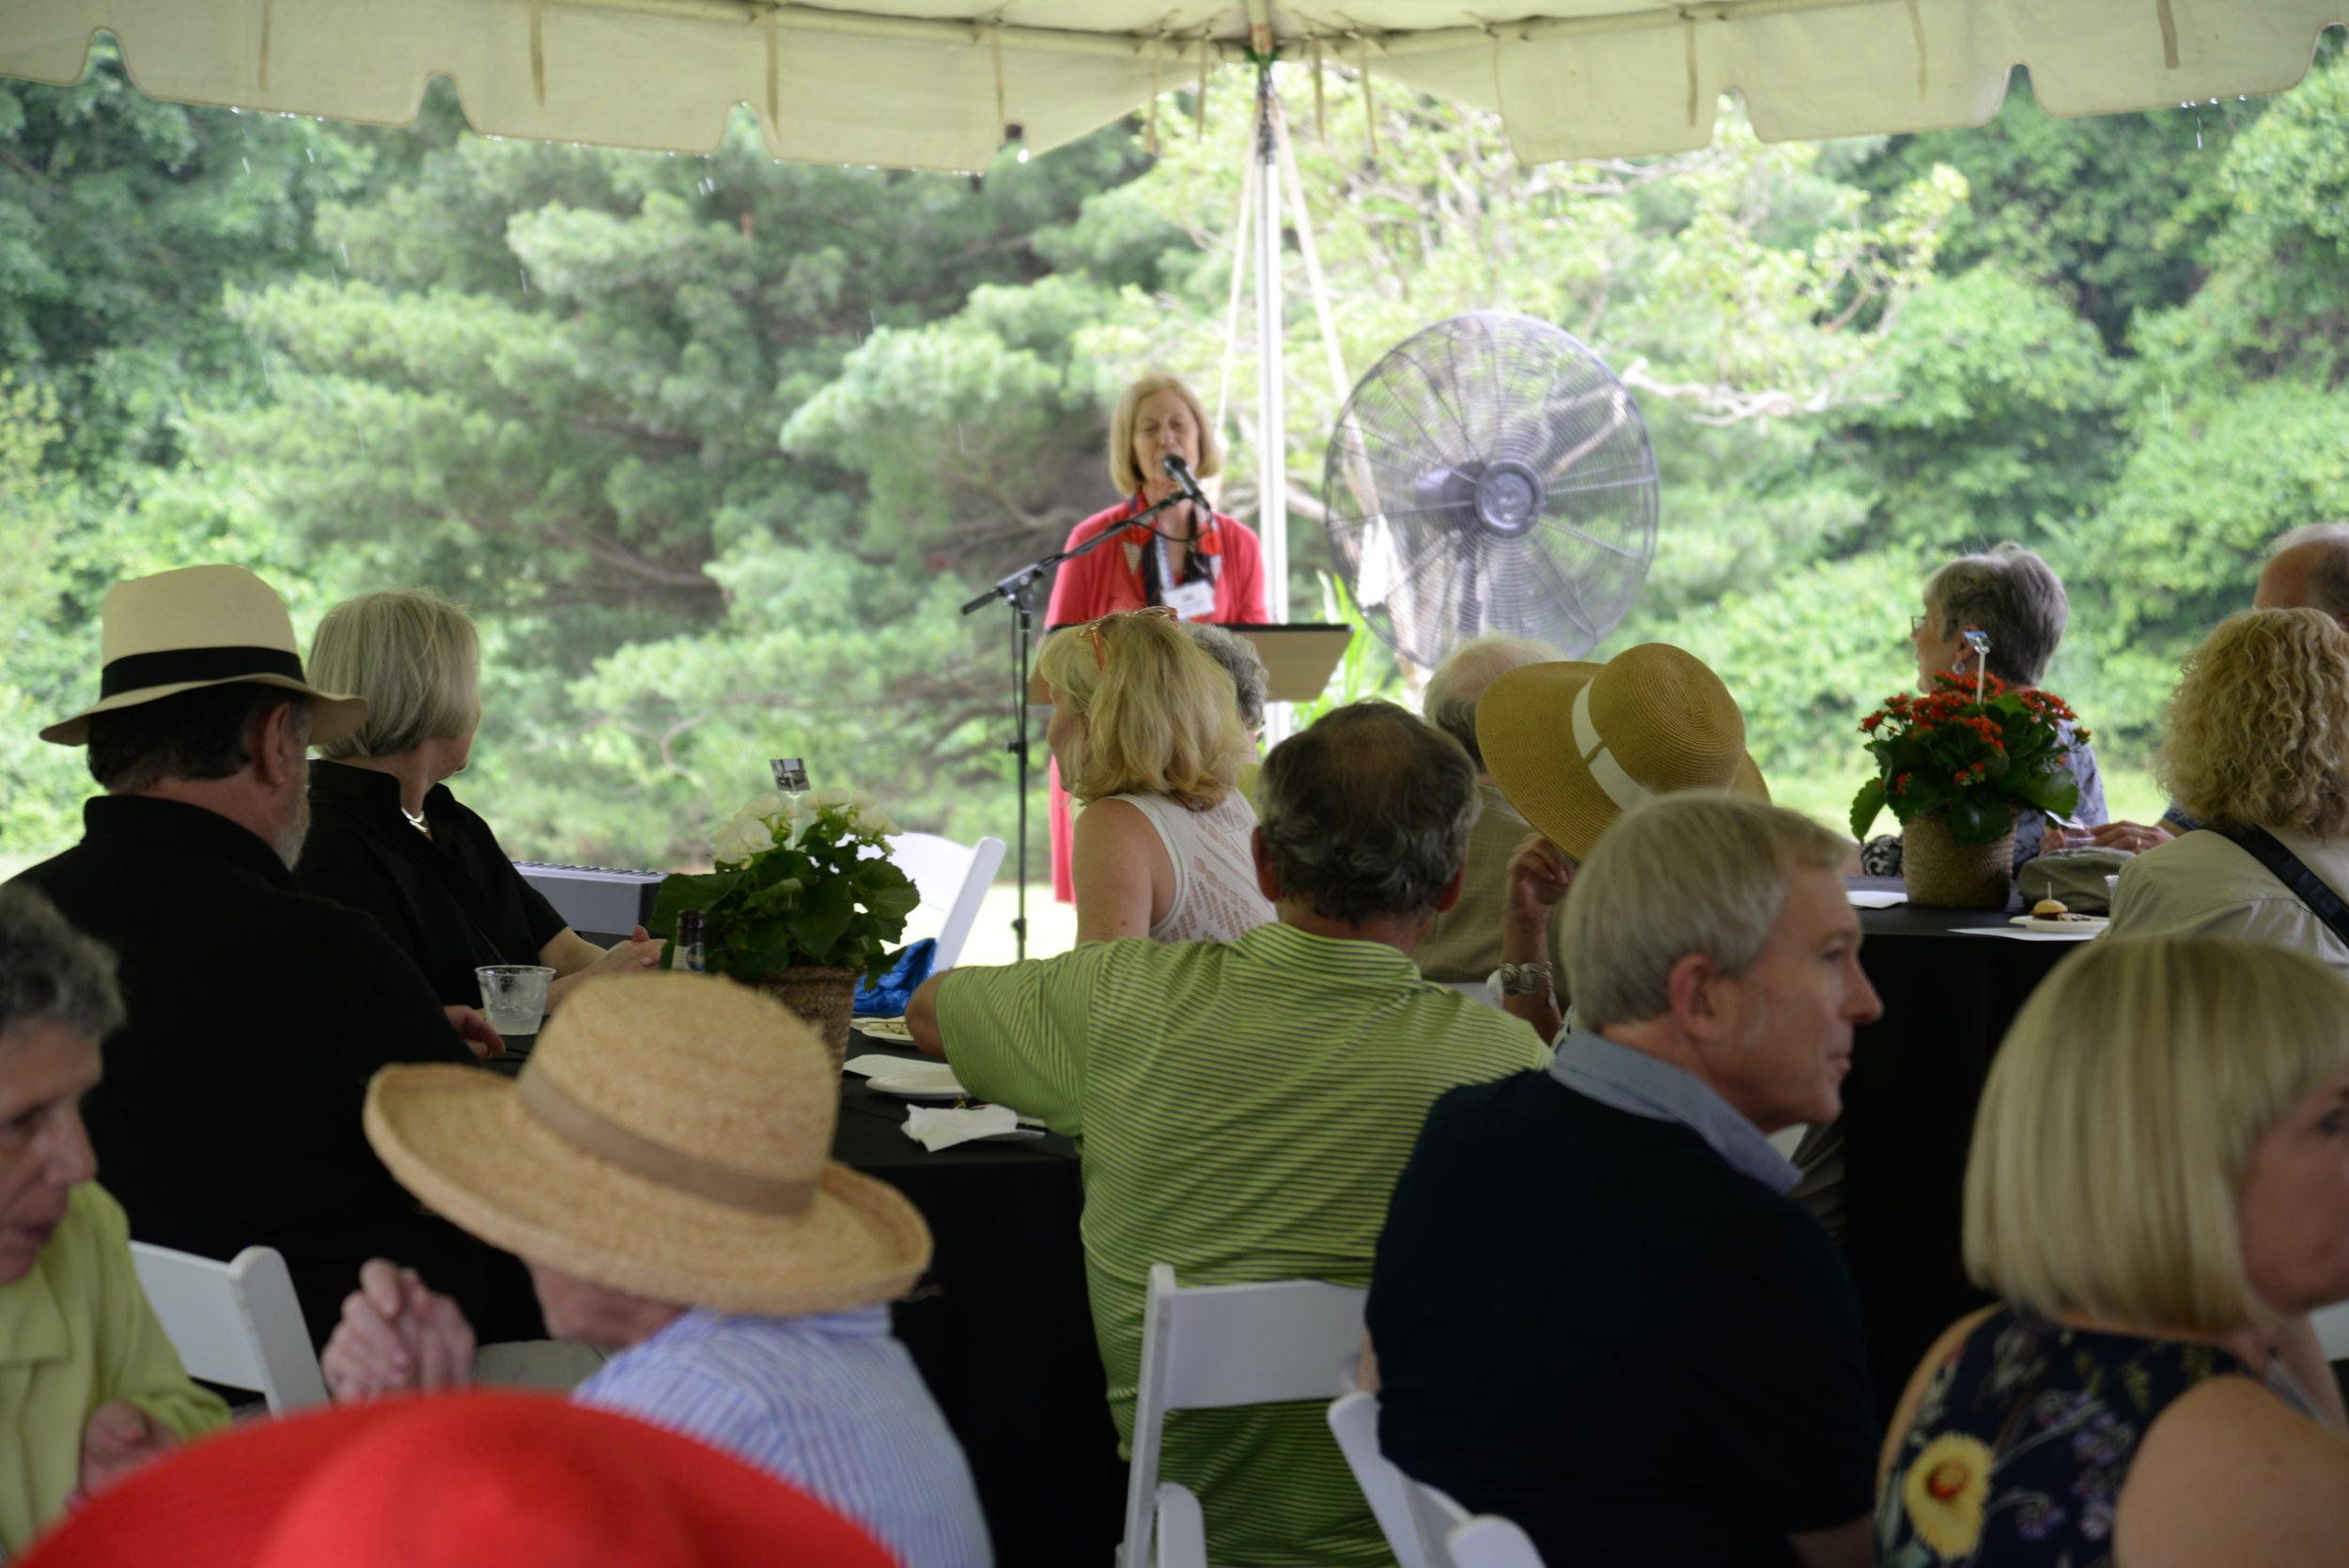 Kay Dusenbery, Director of the Frank Lloyd Wright House in Ebsworth Park,addresses guests.